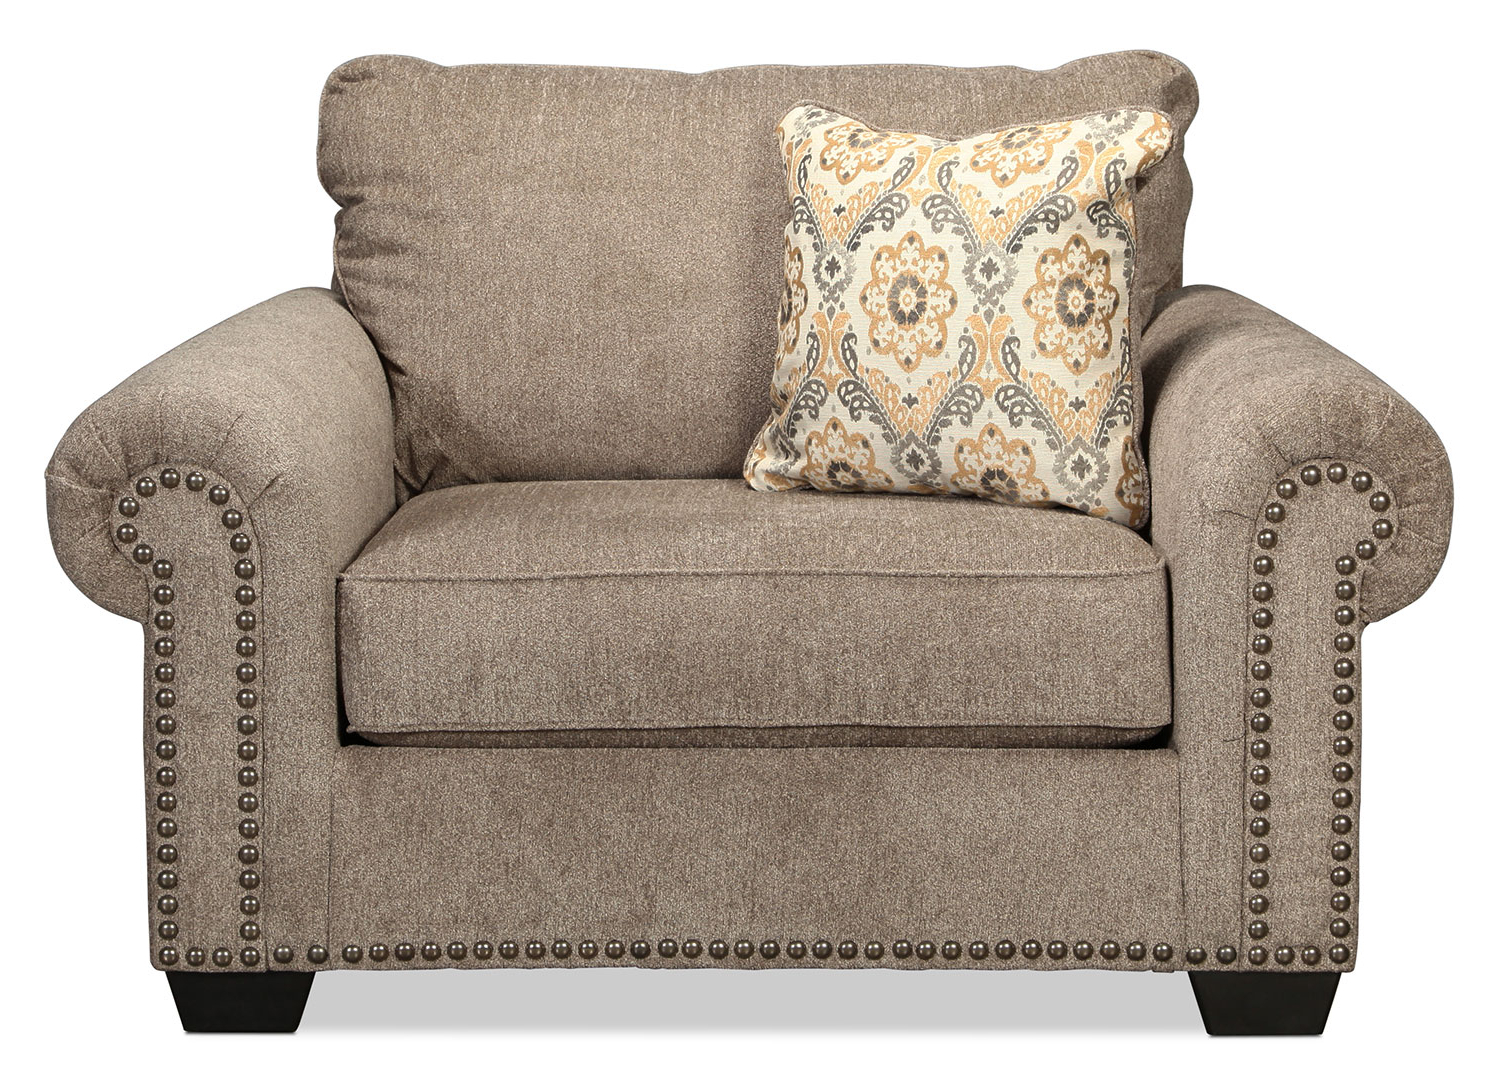 Callie Sofa Chairs Within 2019 Callie Chair – Grey (Gallery 10 of 20)